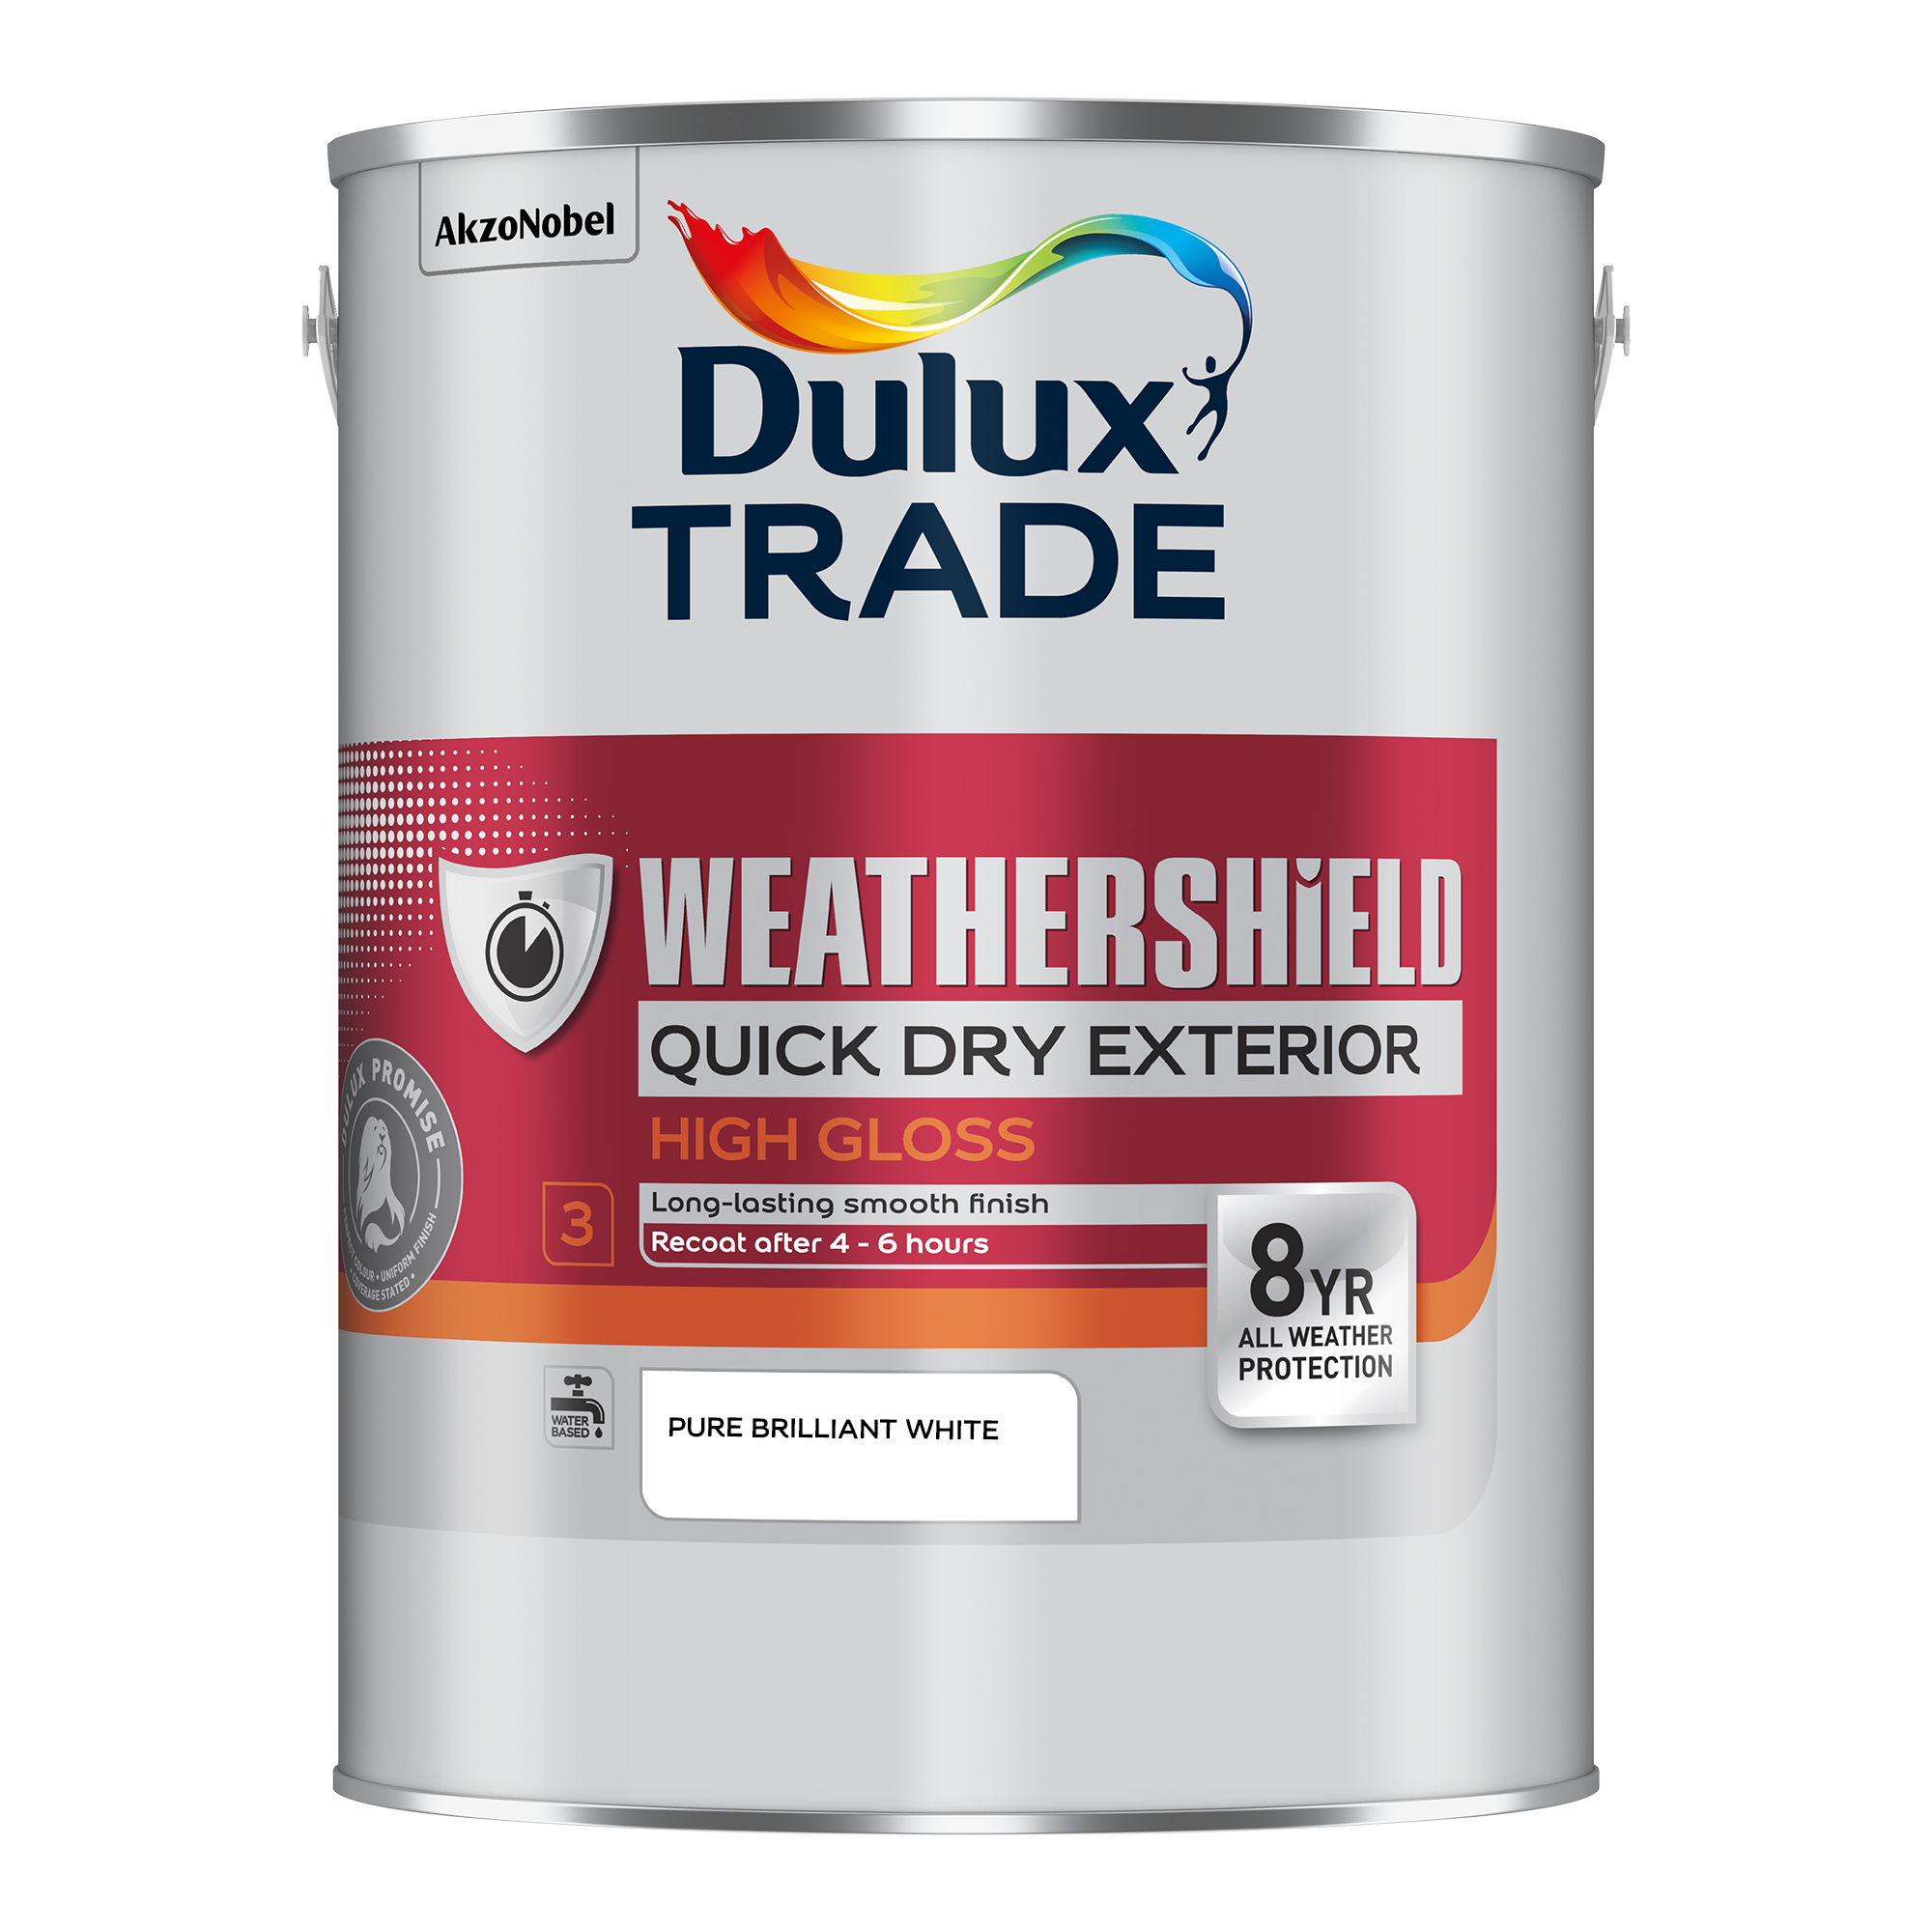 Dulux Trade Weathershield Quick Dry Exterior Gloss